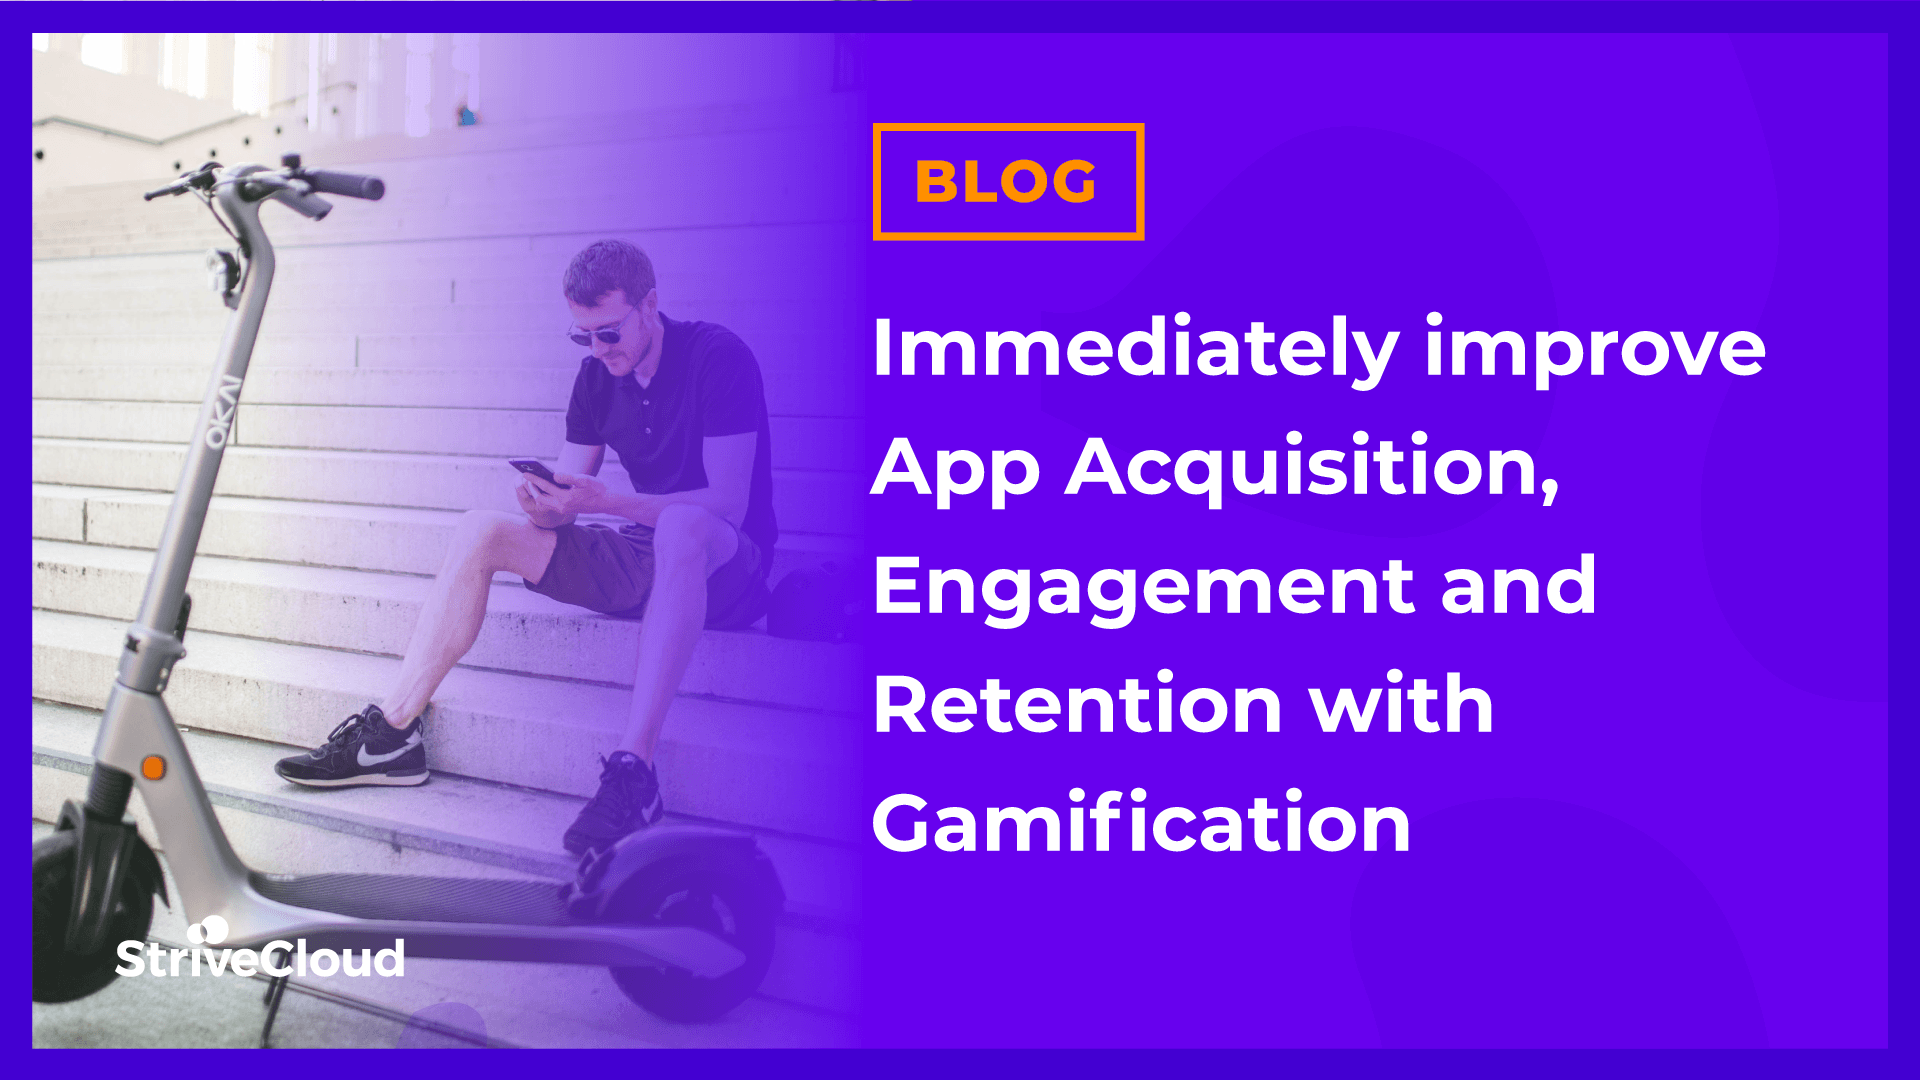 Immediately improve App Acquisition, Engagement and Retention with Gamification